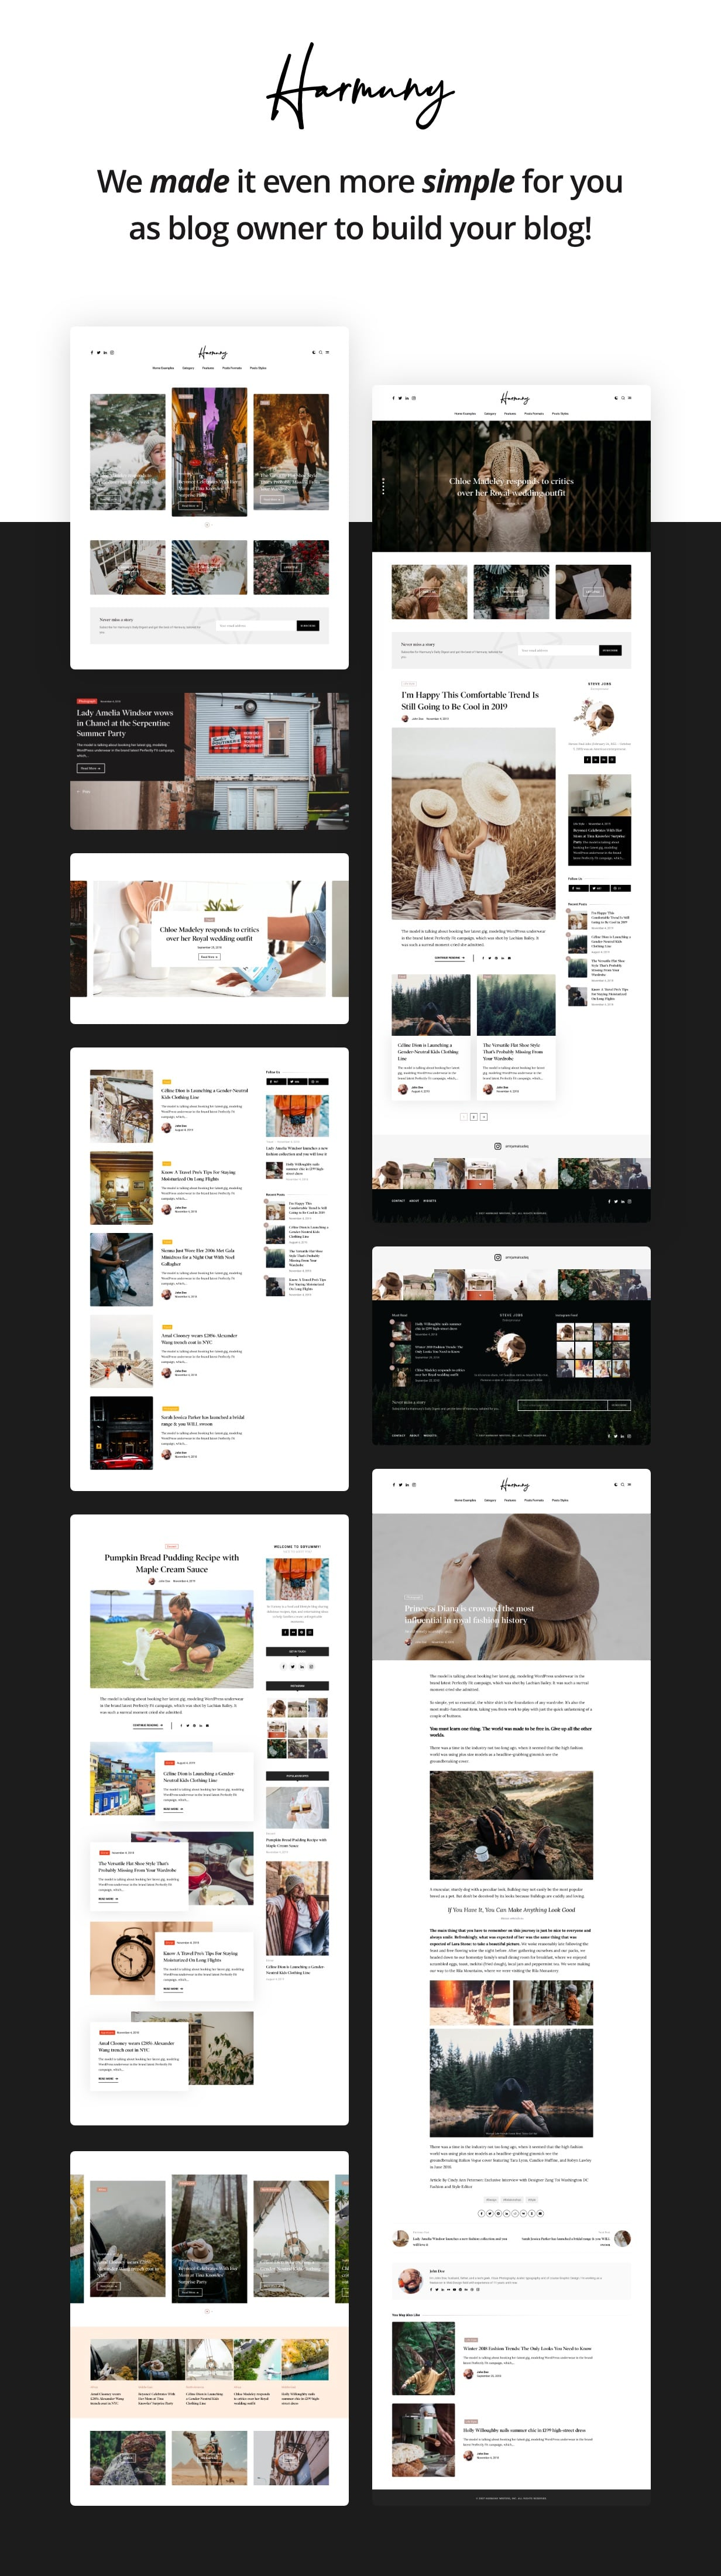 Harmuny - Modern WordPress Blog Theme - 3